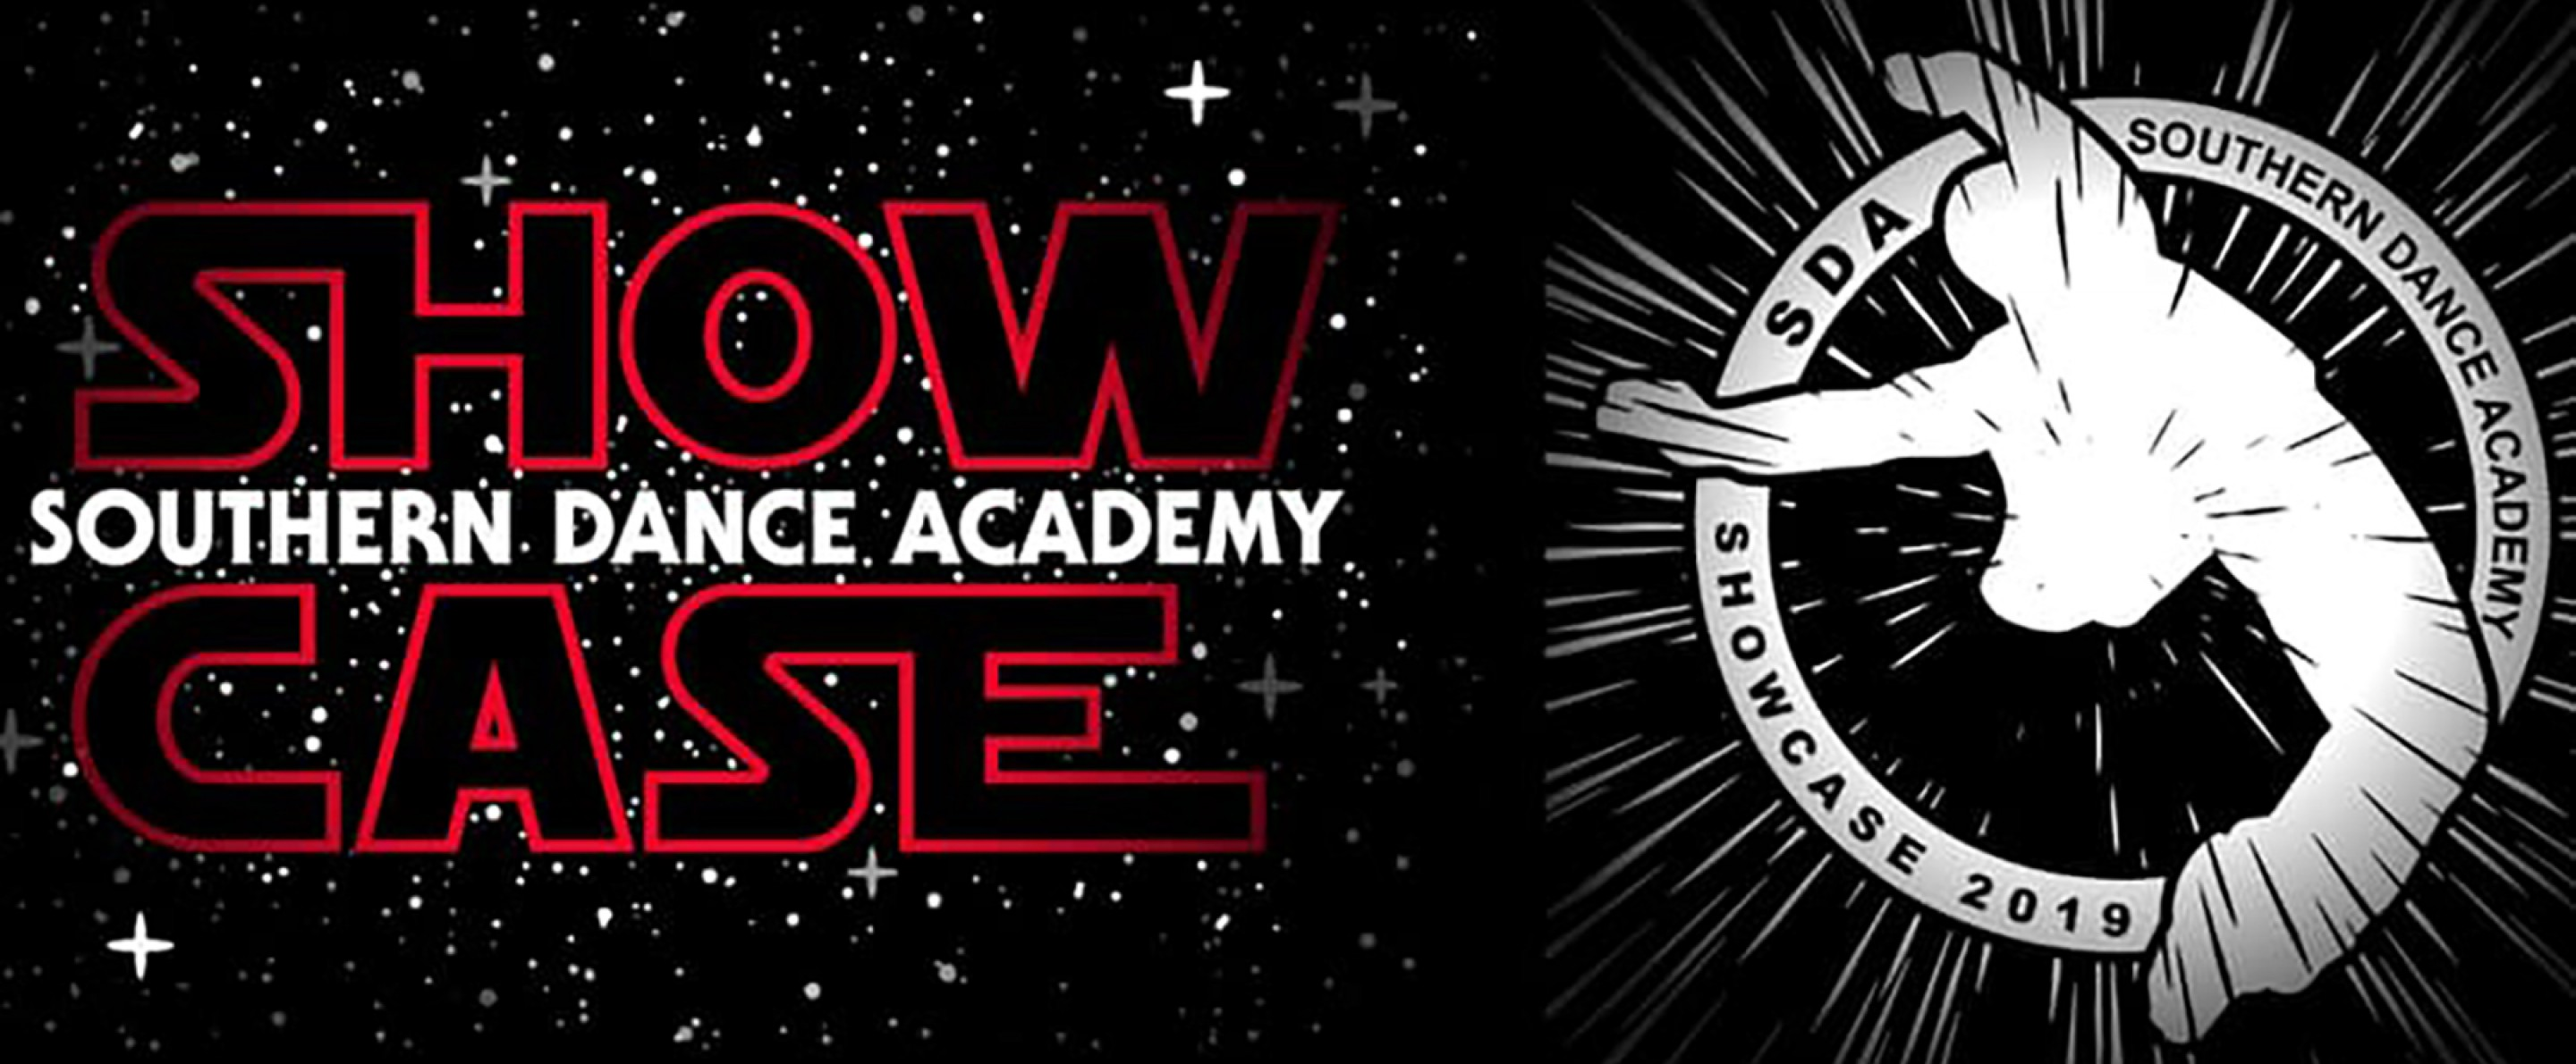 Southern Dance Academy Showcase 2019 | Spartanburg Memorial Auditorium